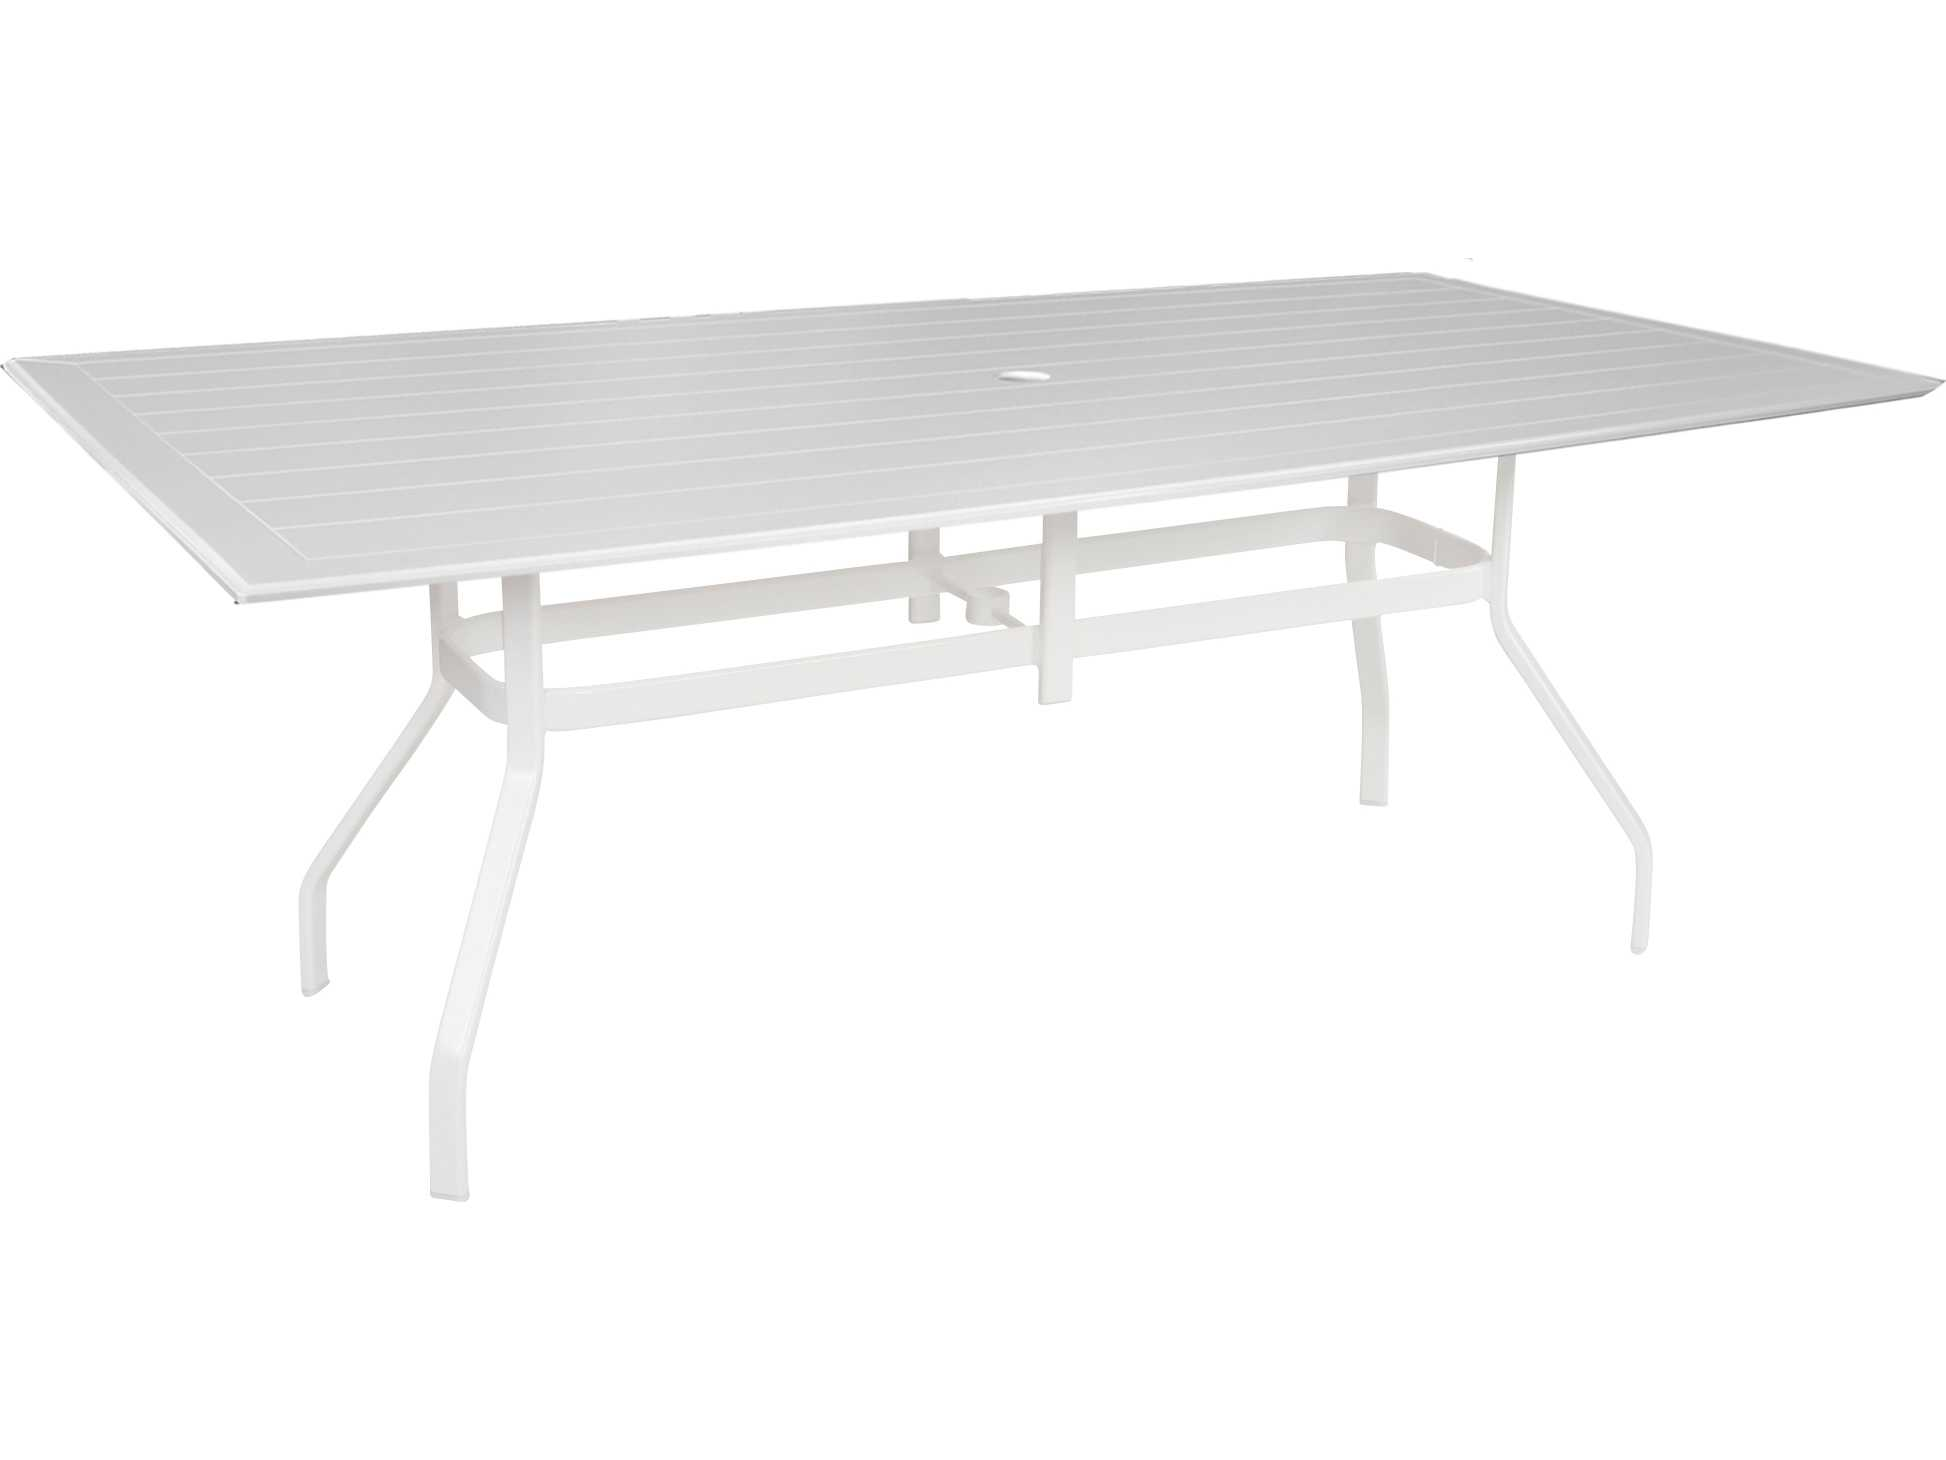 Windward Design Group Newport Mgp 76 x 42 Oval Dining Table with